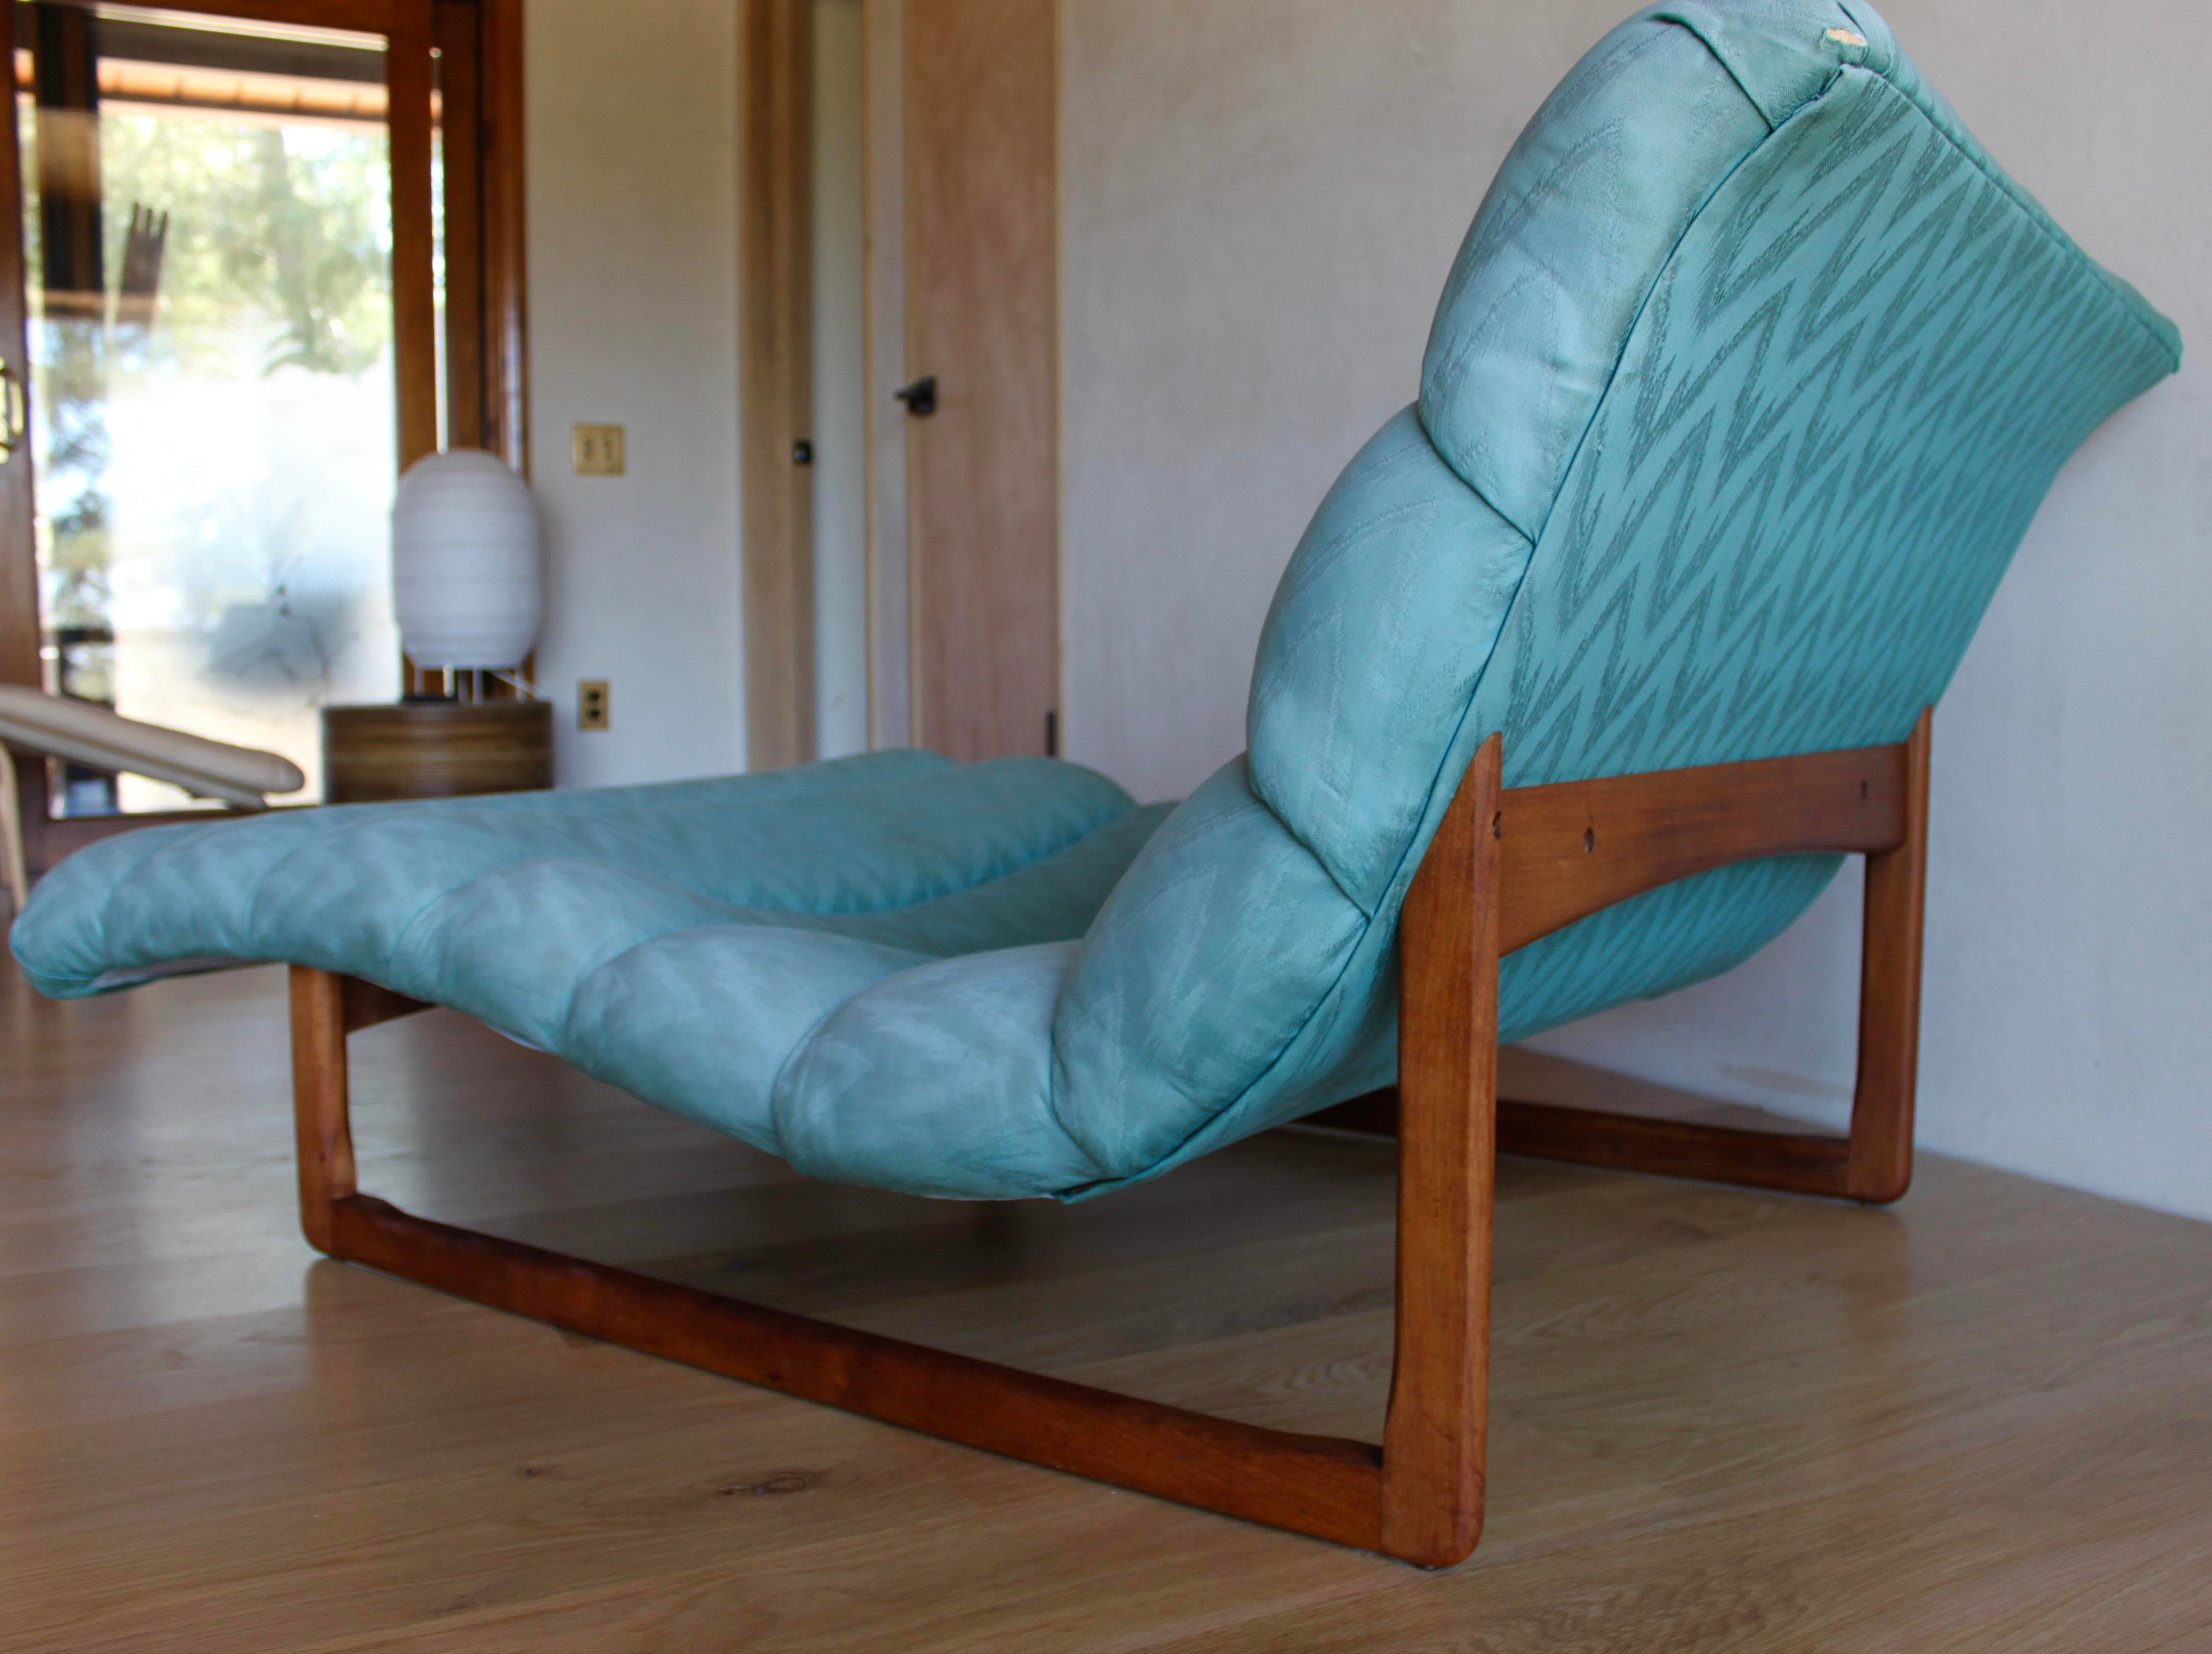 1960s Mid Century Adrian Pearsall Attributed Tufted Wide Sculptural Chaise  Lounge Chair For Sale